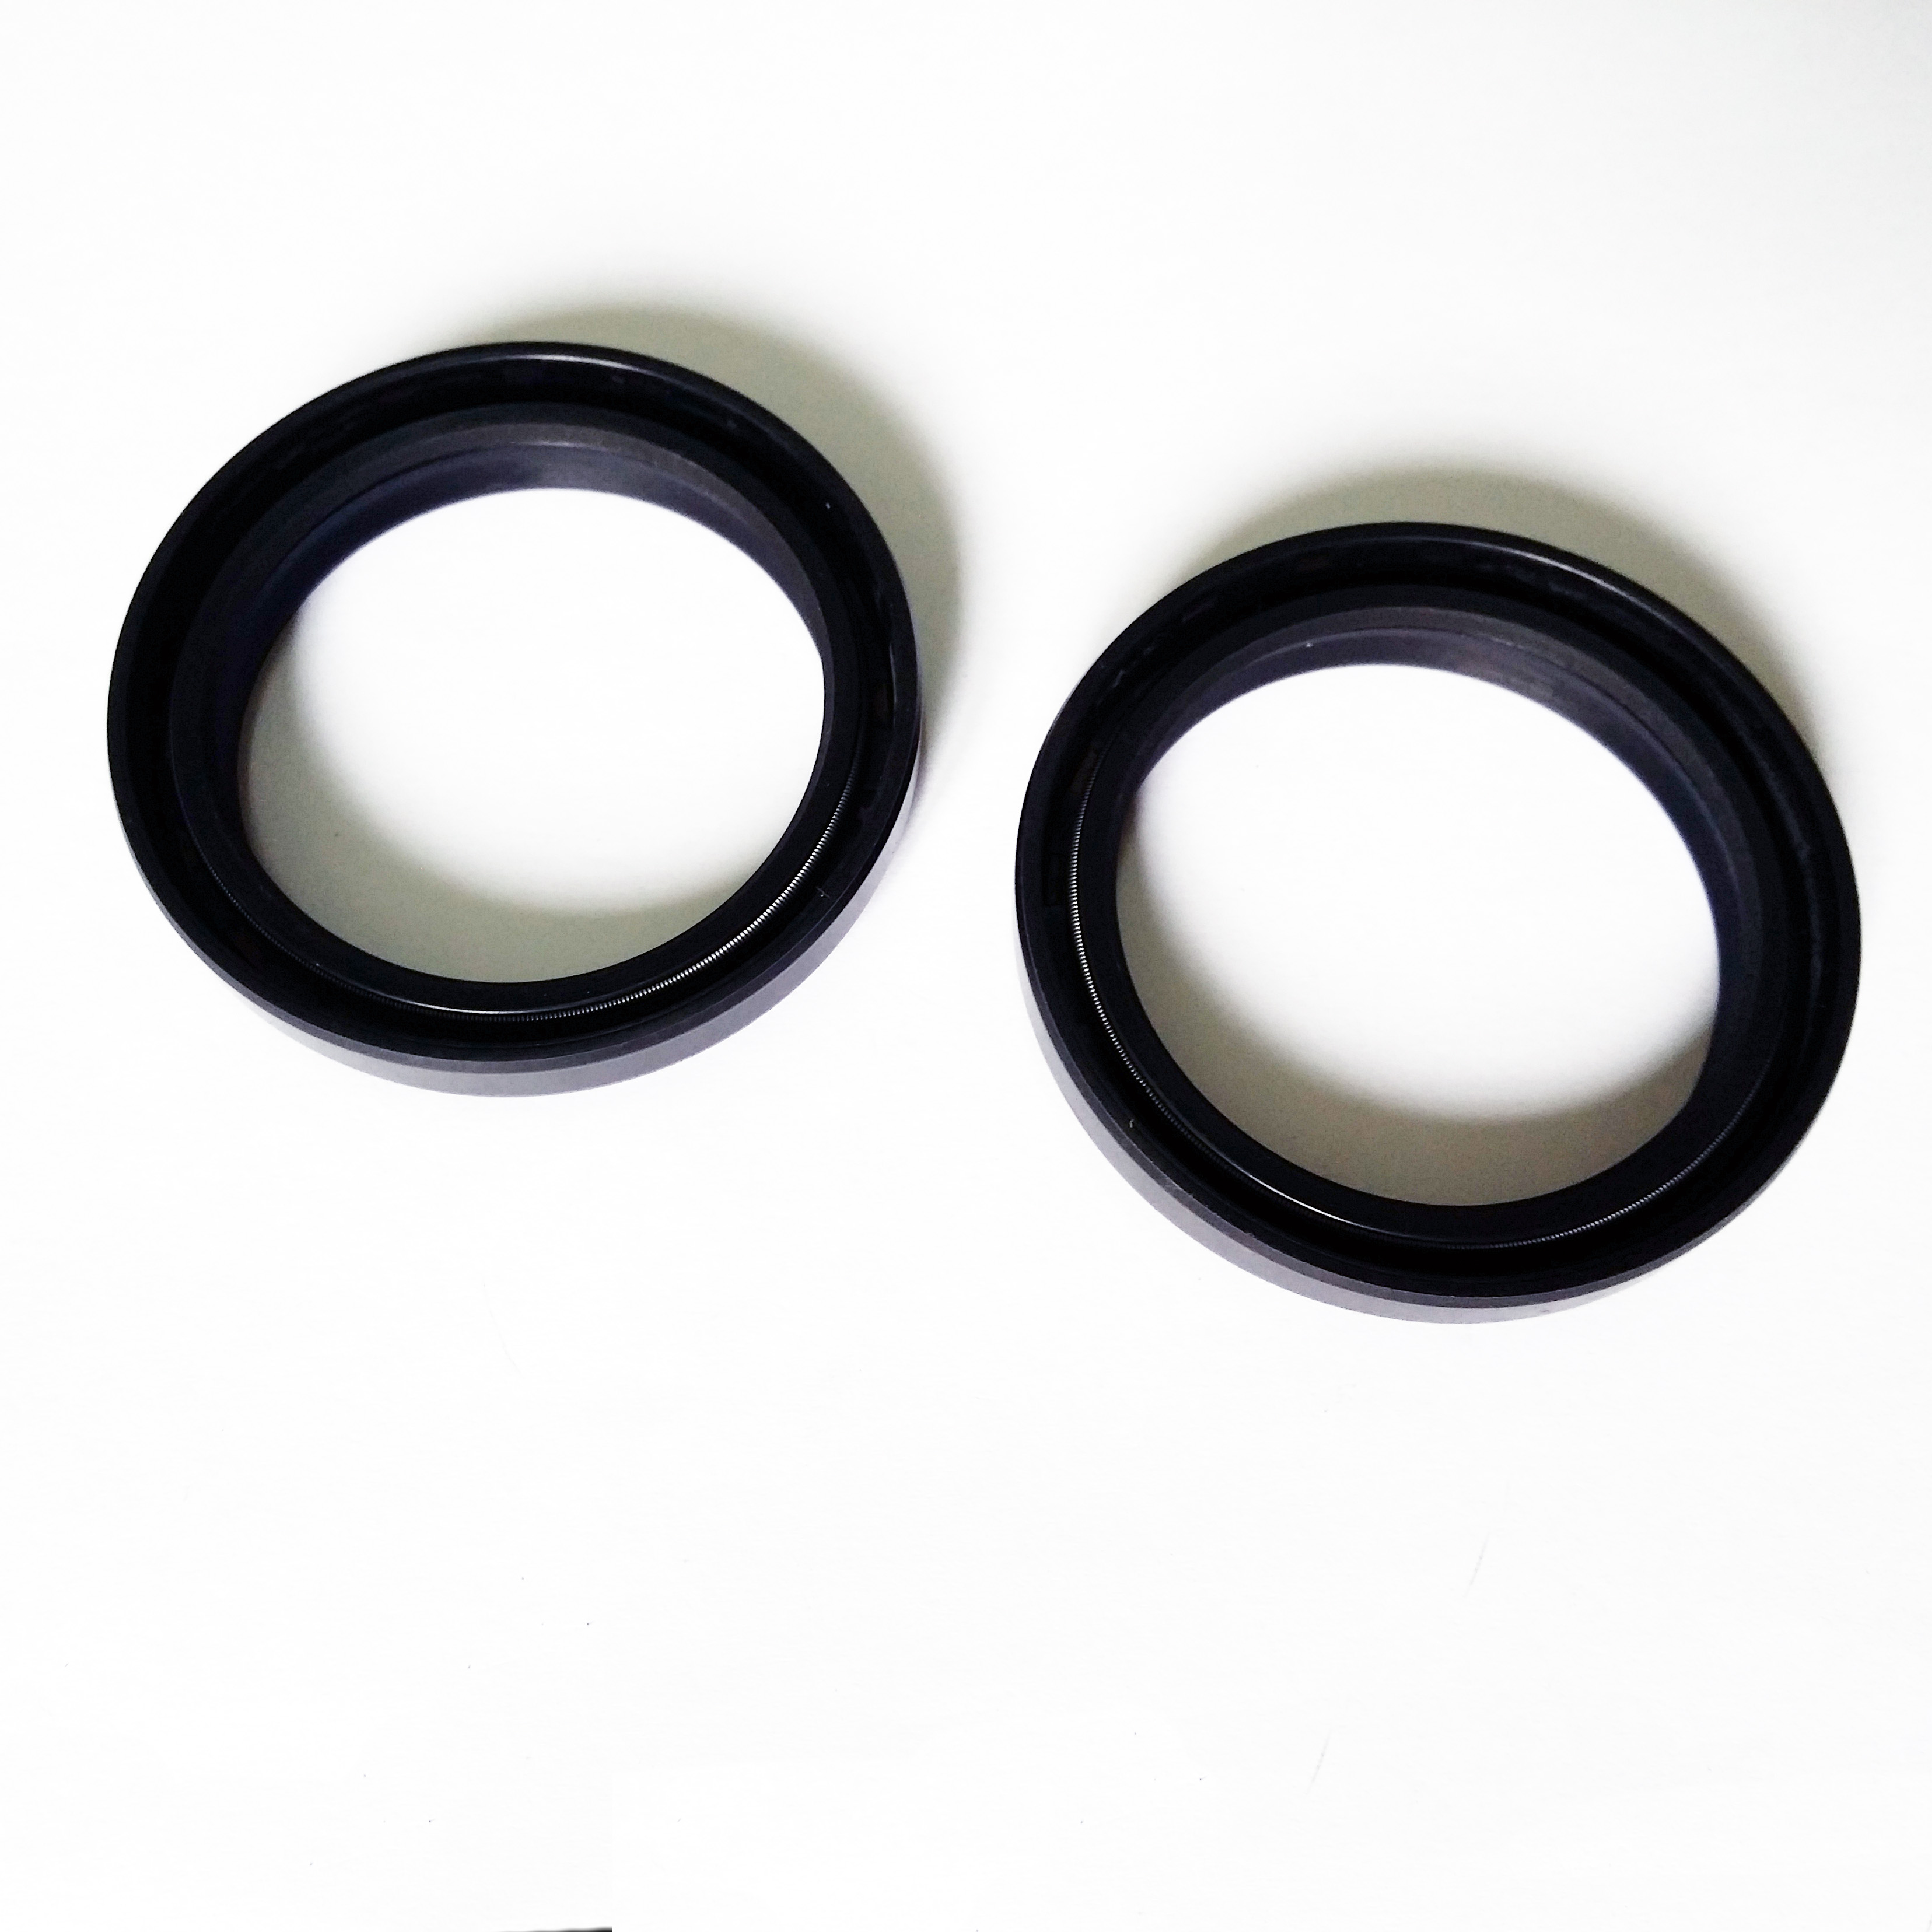 K-Tech Yamaha FZR1000 1991-1993 NOK Front Fork Oil Seals 41x53x8/9.5mm